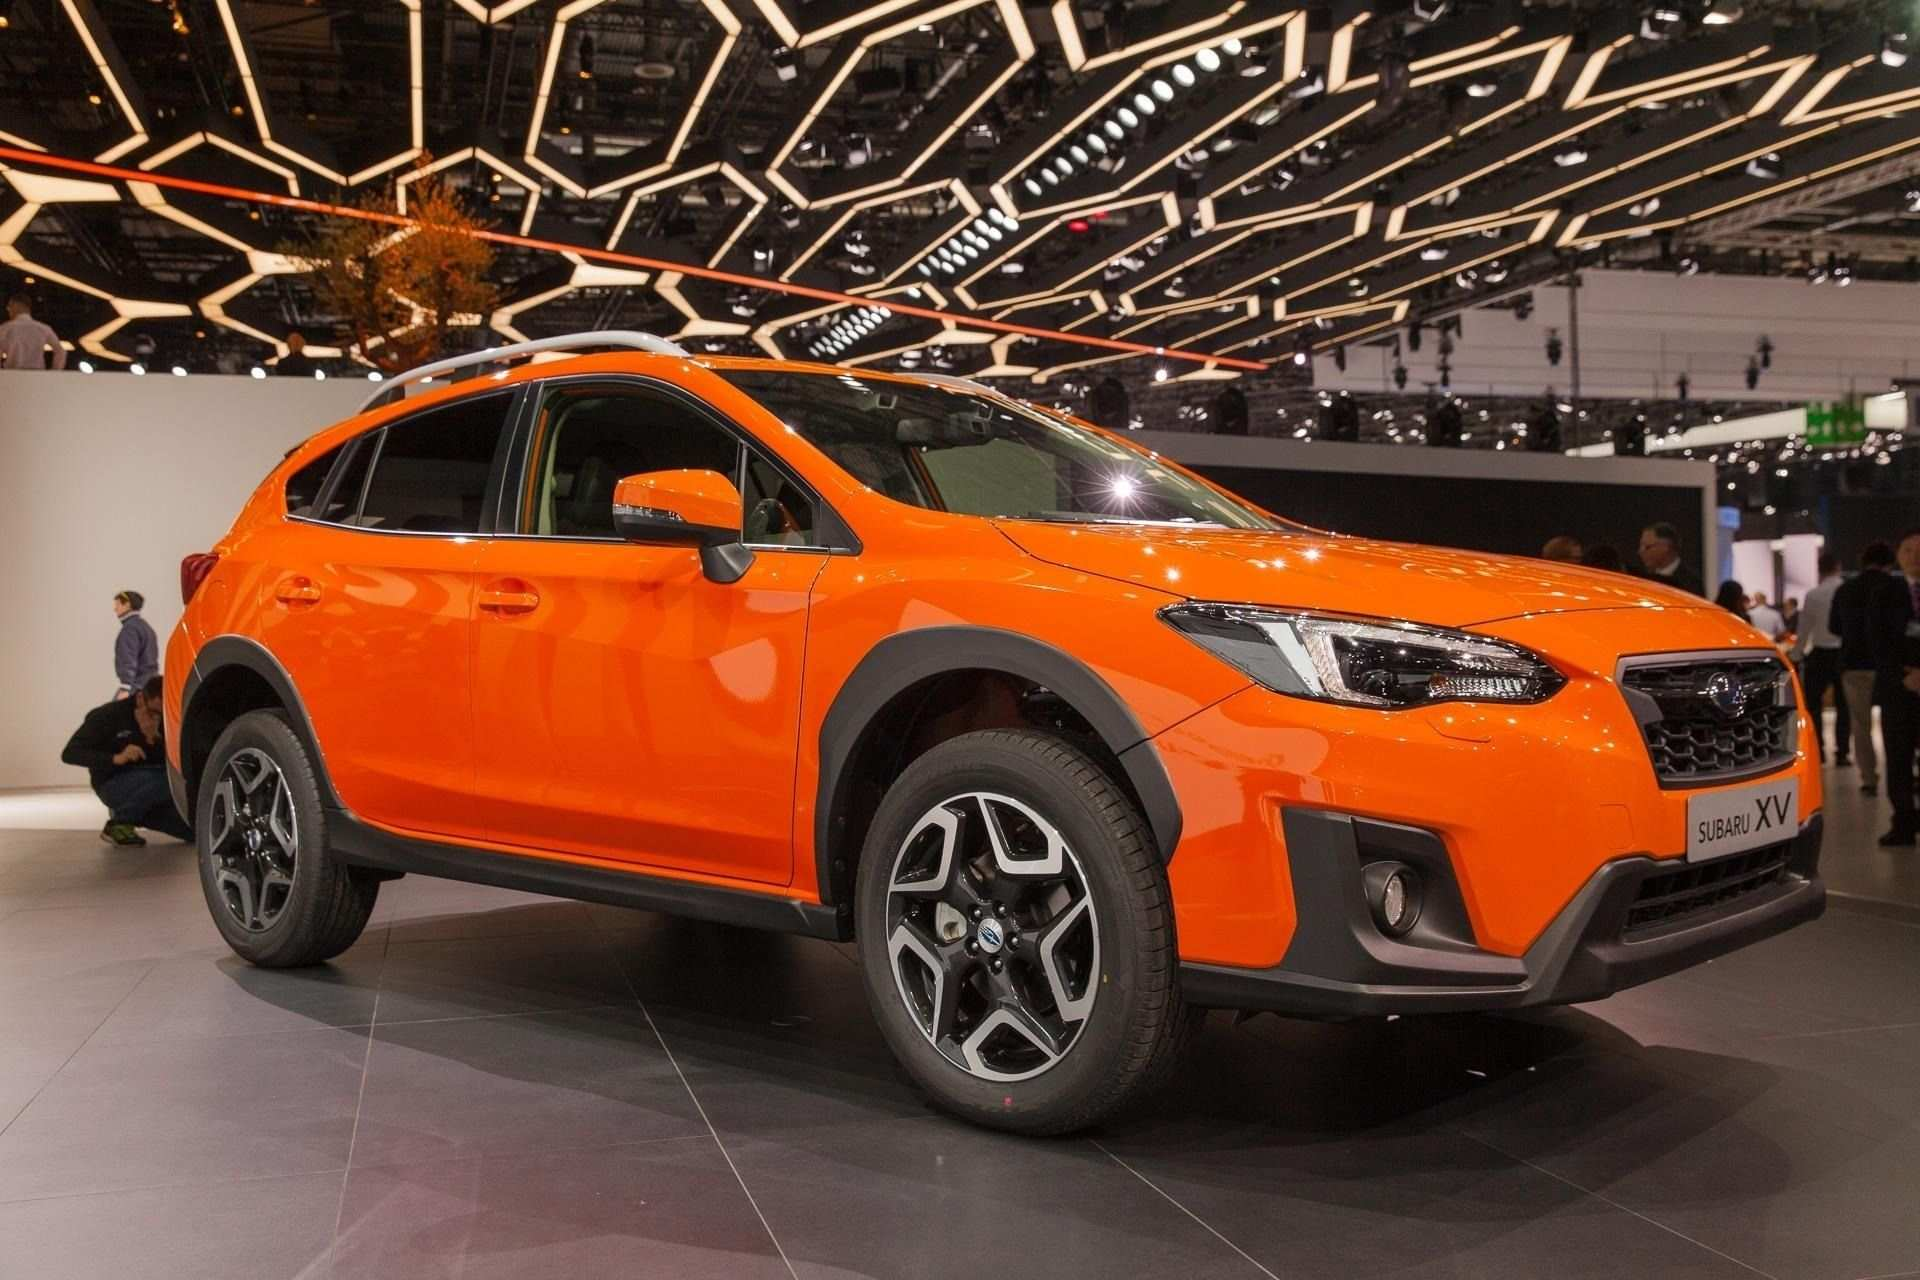 25 New Subaru Xv Turbo 2019 Ratings for Subaru Xv Turbo 2019